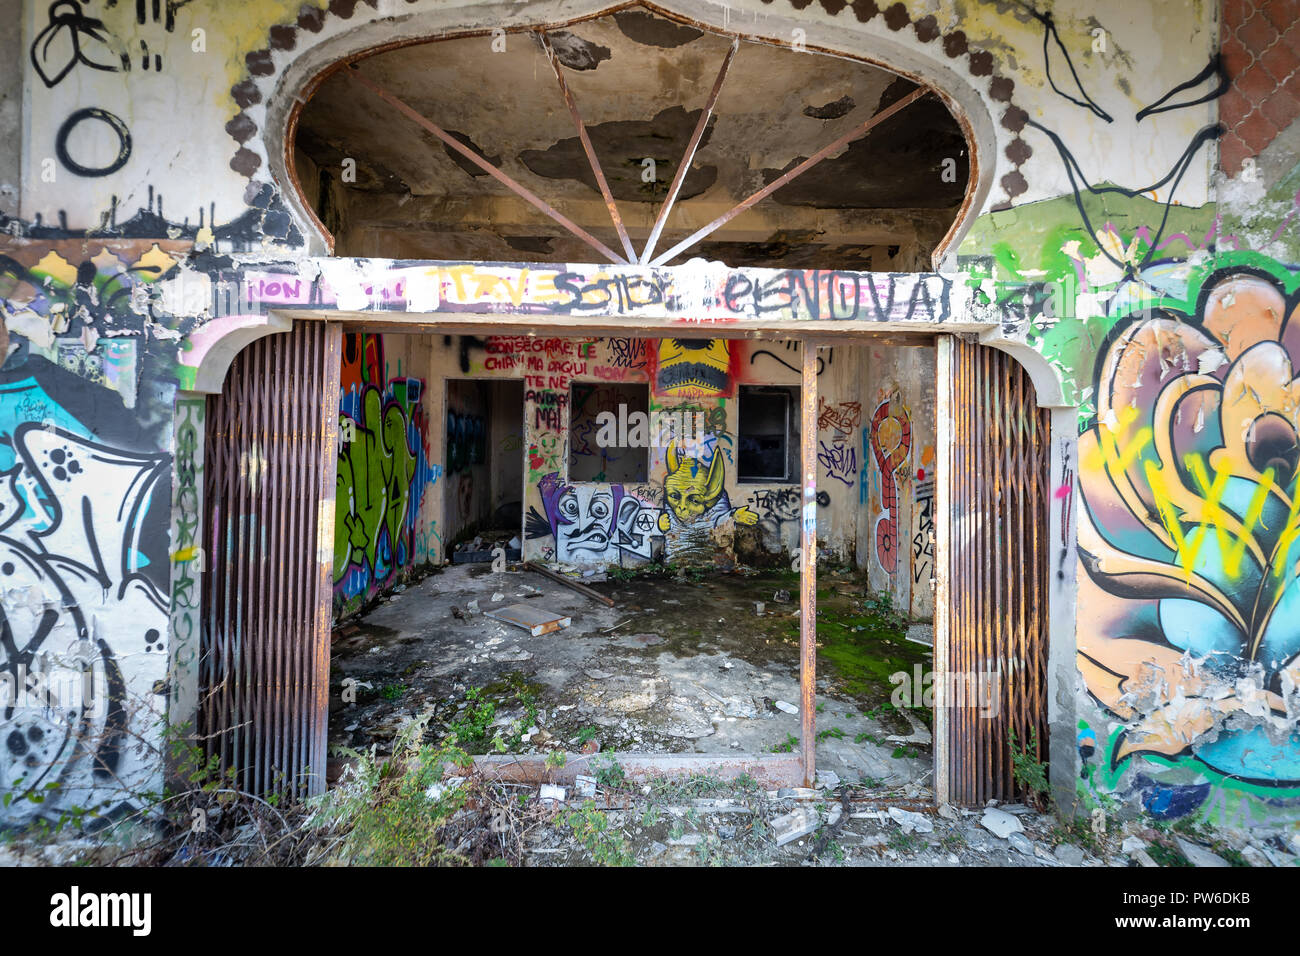 Photographic reportage of the abandoned city of Consonno (Lecco, Italy) - Stock Image